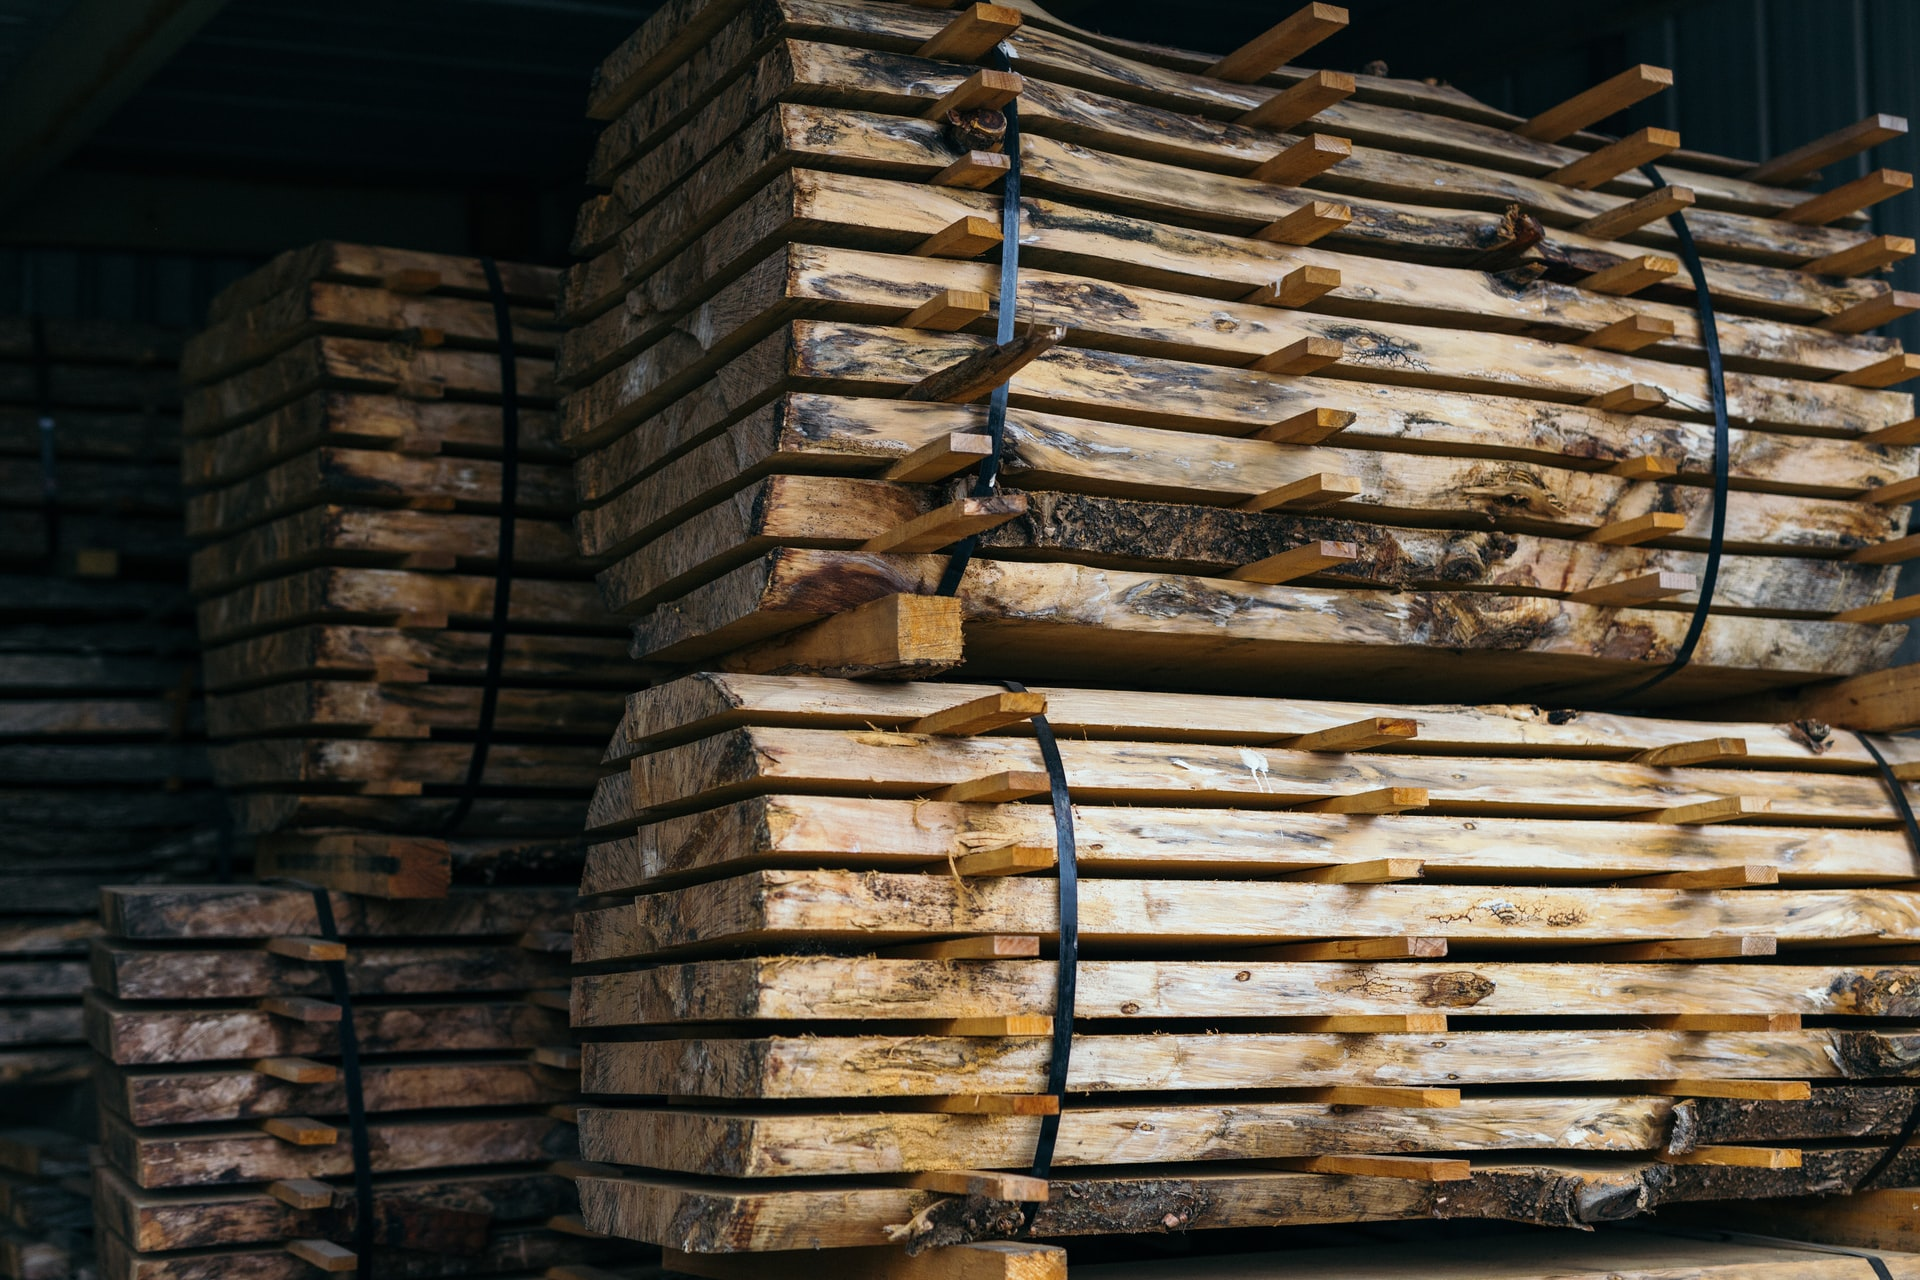 Homebuilders, Decking, and DIY Launch Lumber to New Highs